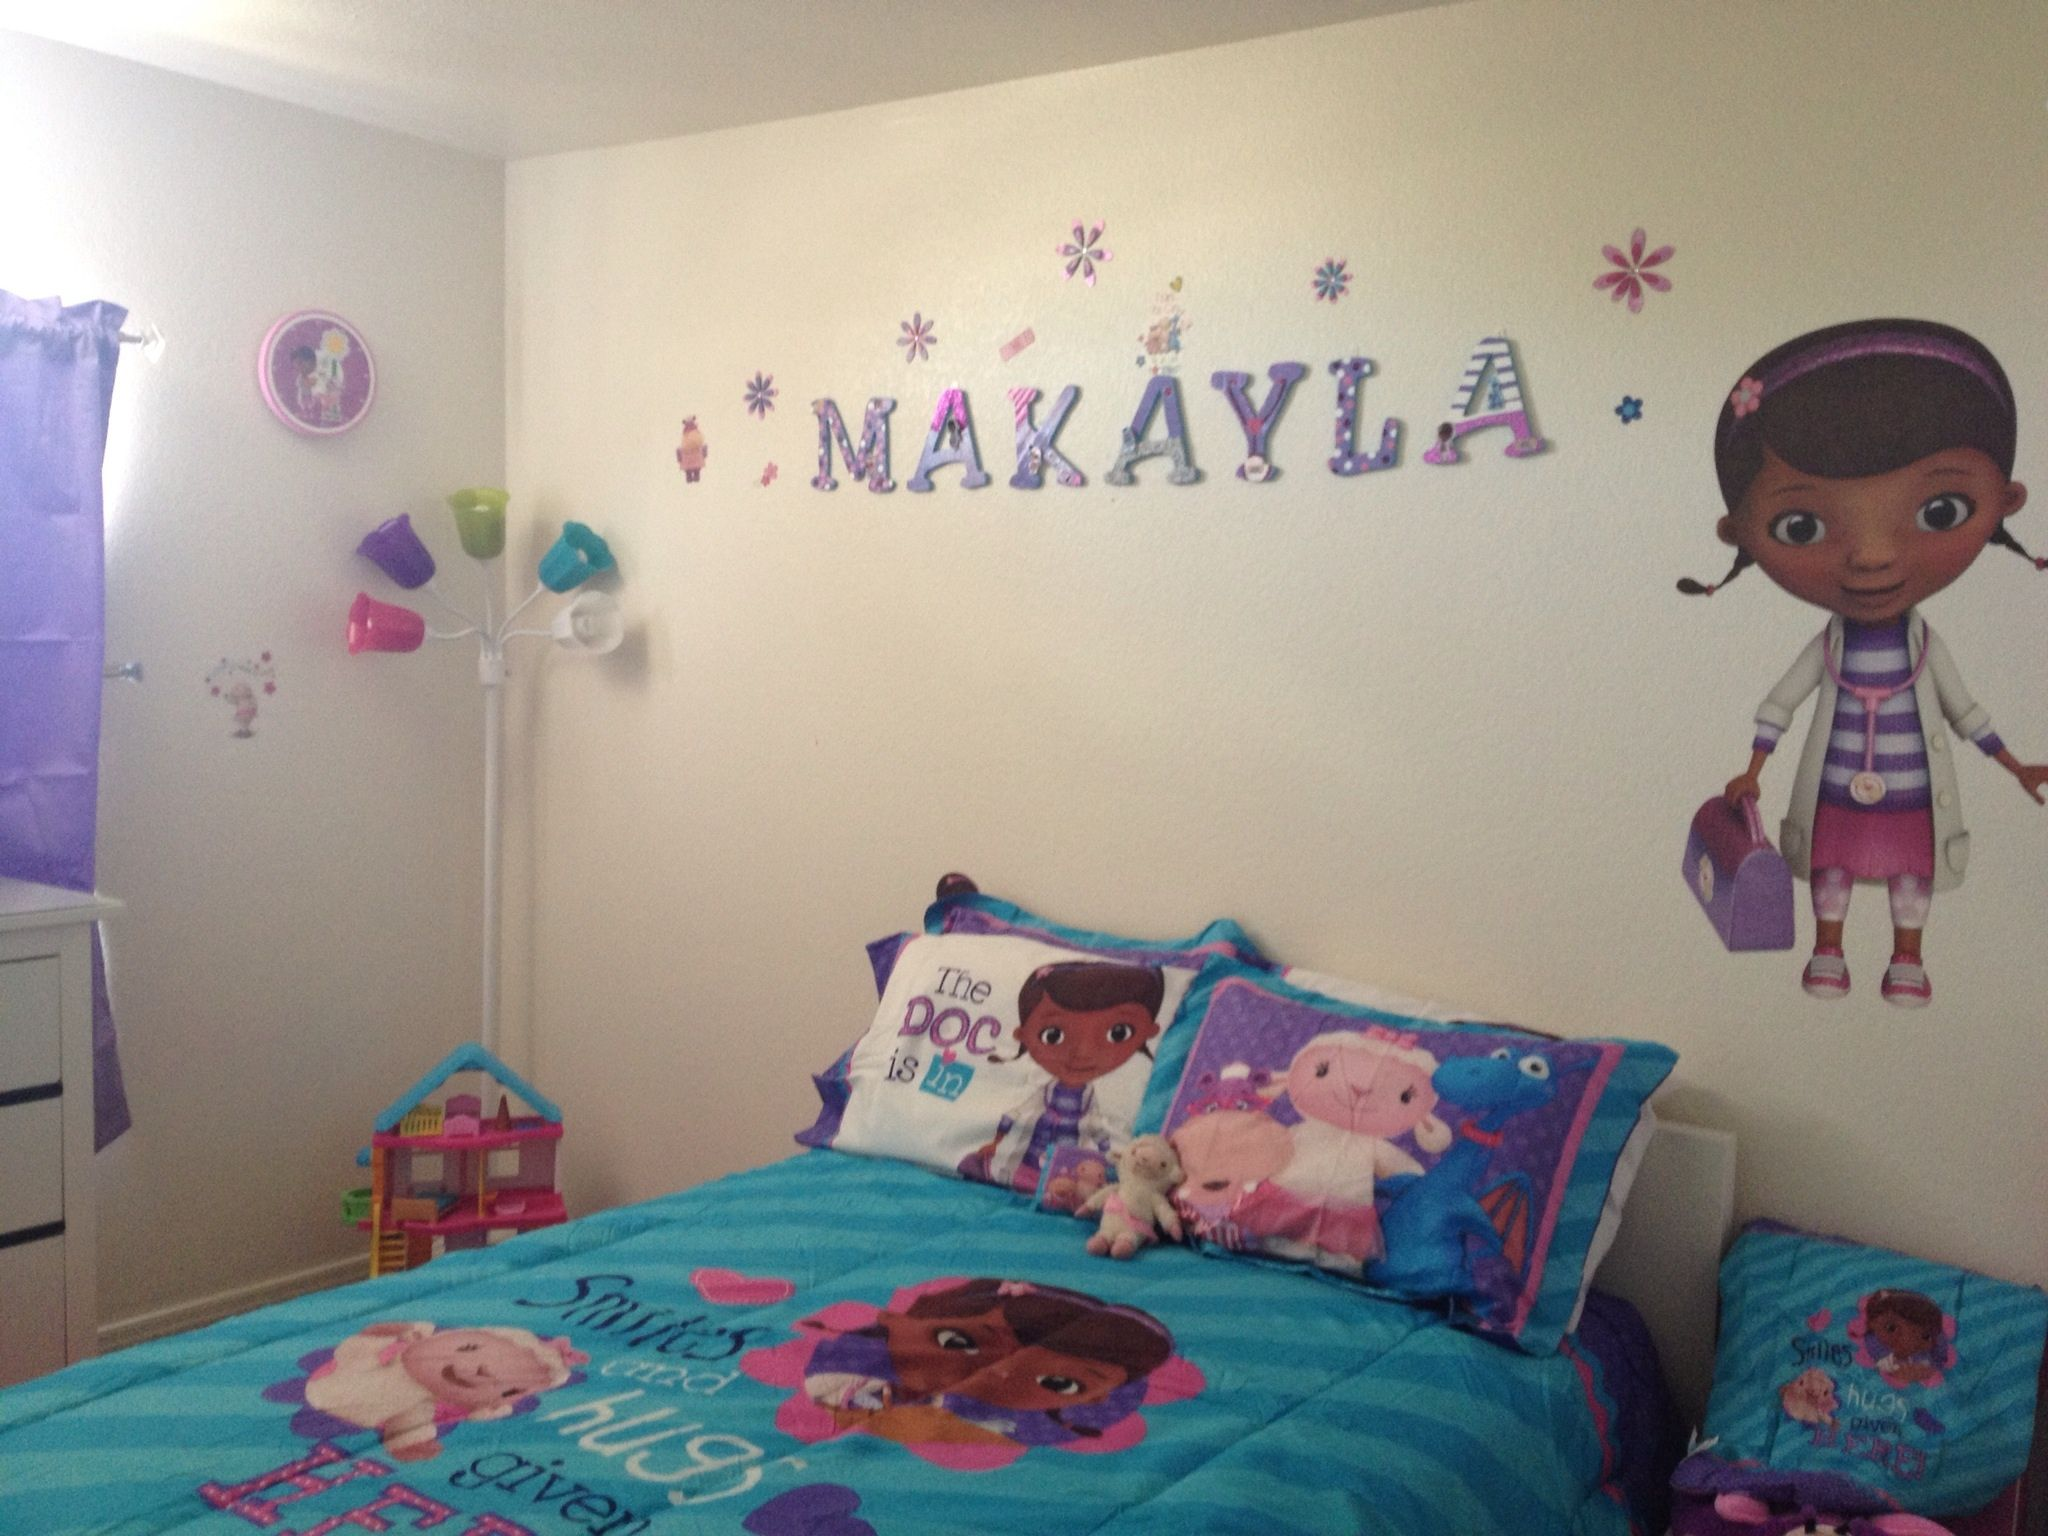 doc mcstuffins room makeover kid s room pinterest 15191 | 55630968bb08b6b8528ddc7aba6fb498